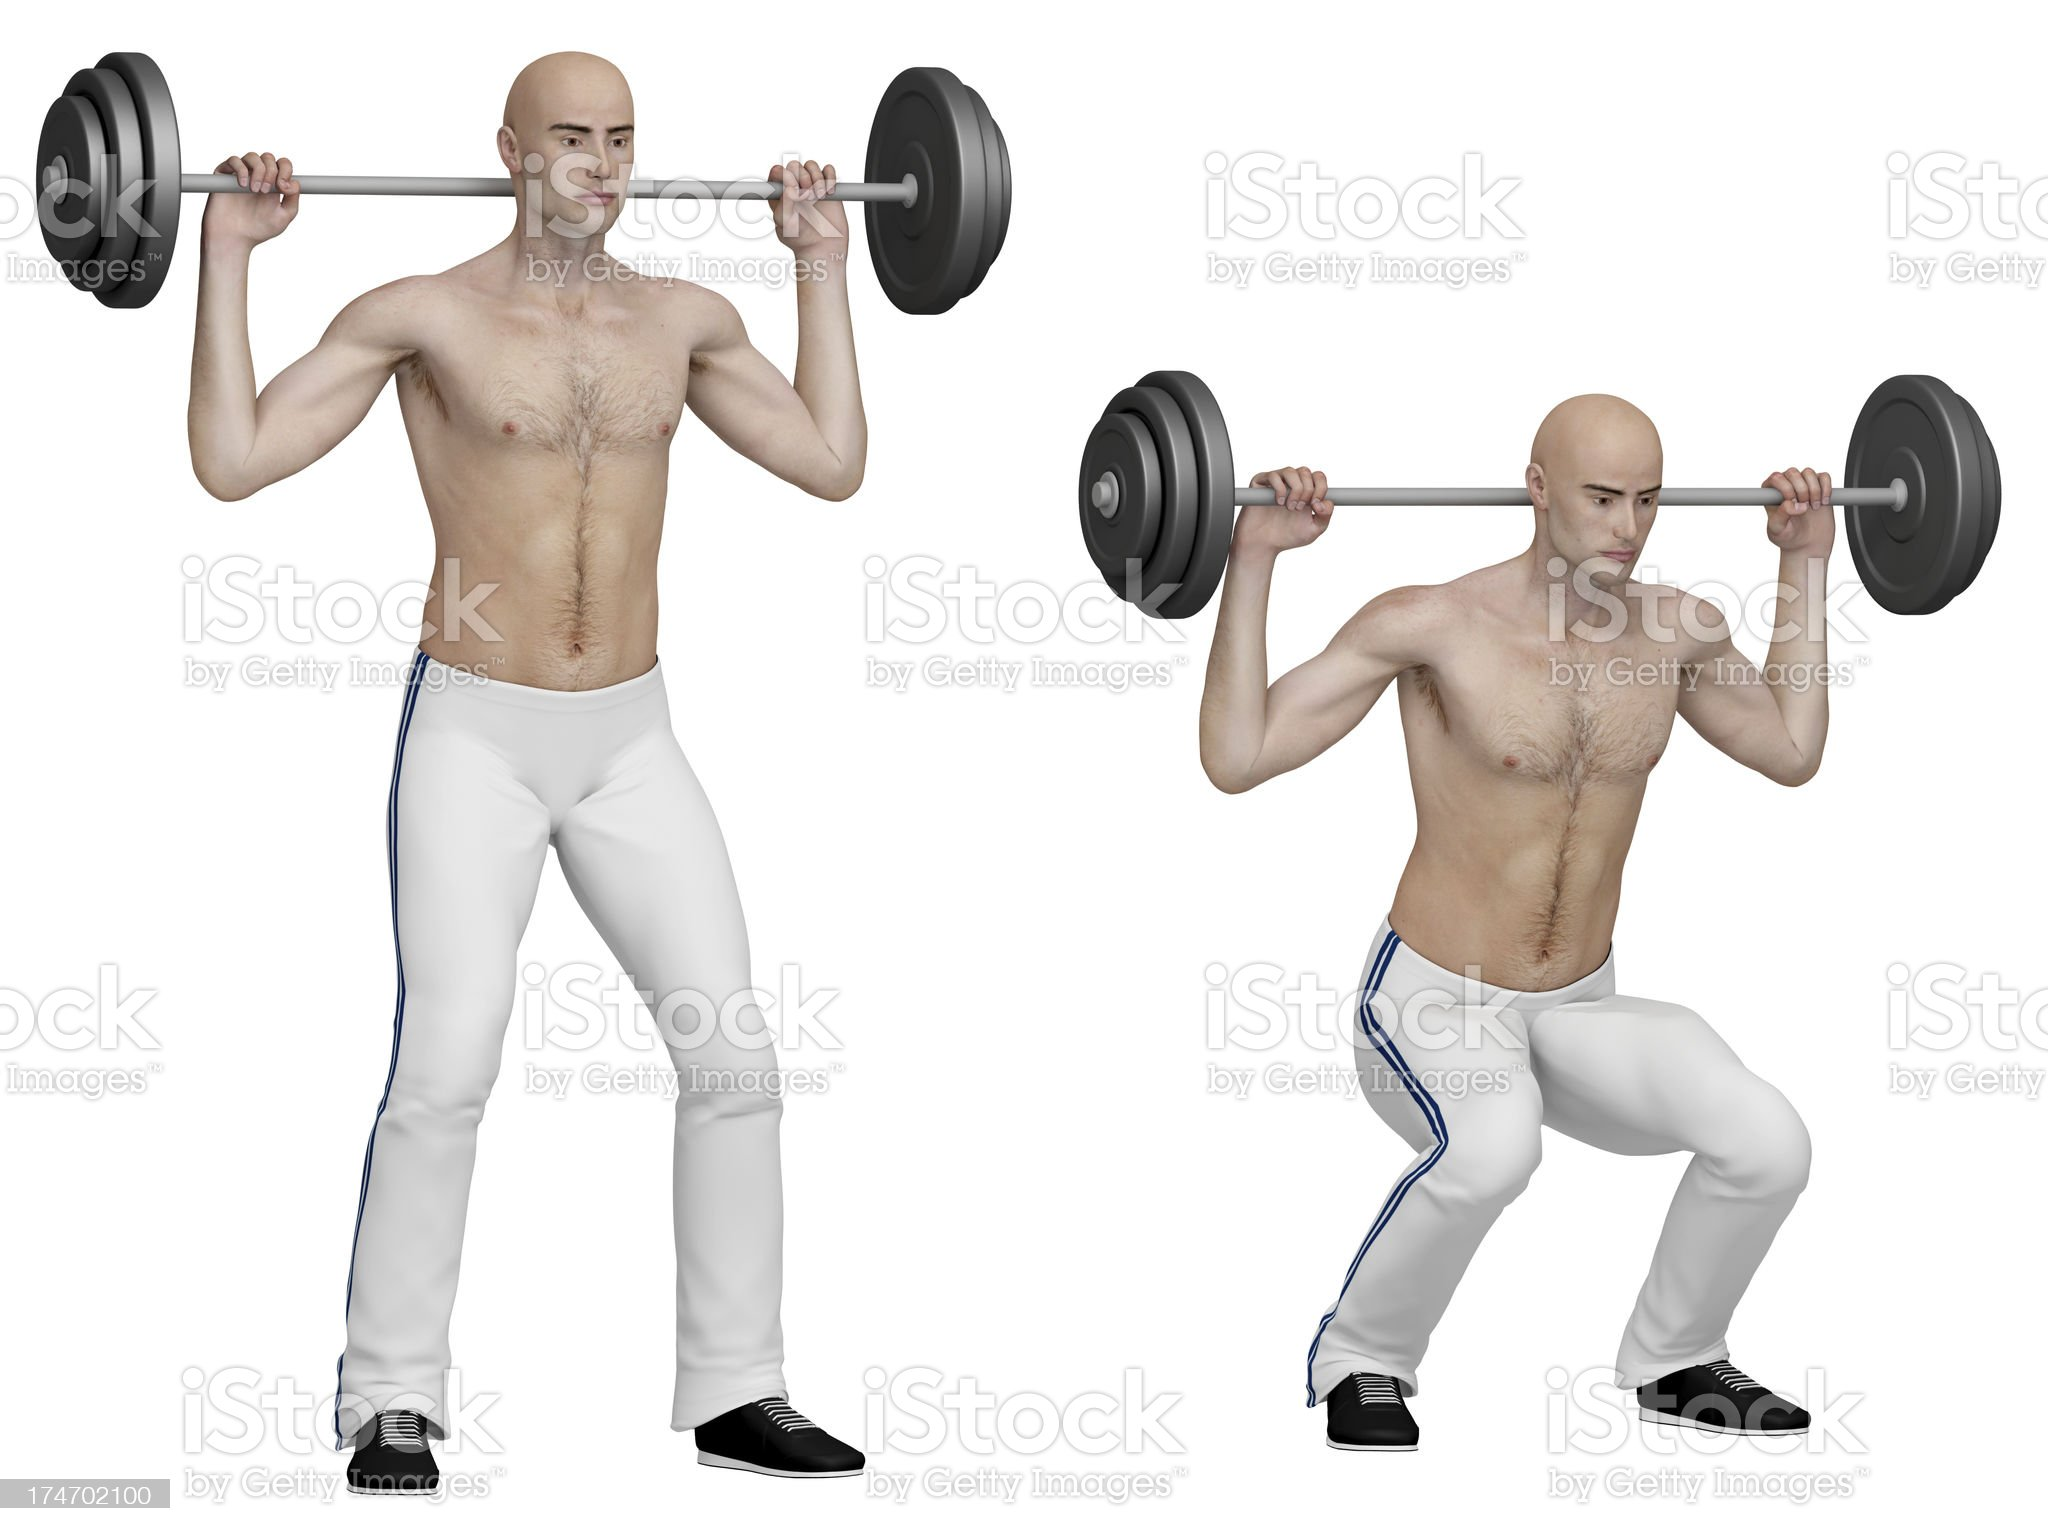 Series of exercises: Barbell squats royalty-free stock photo